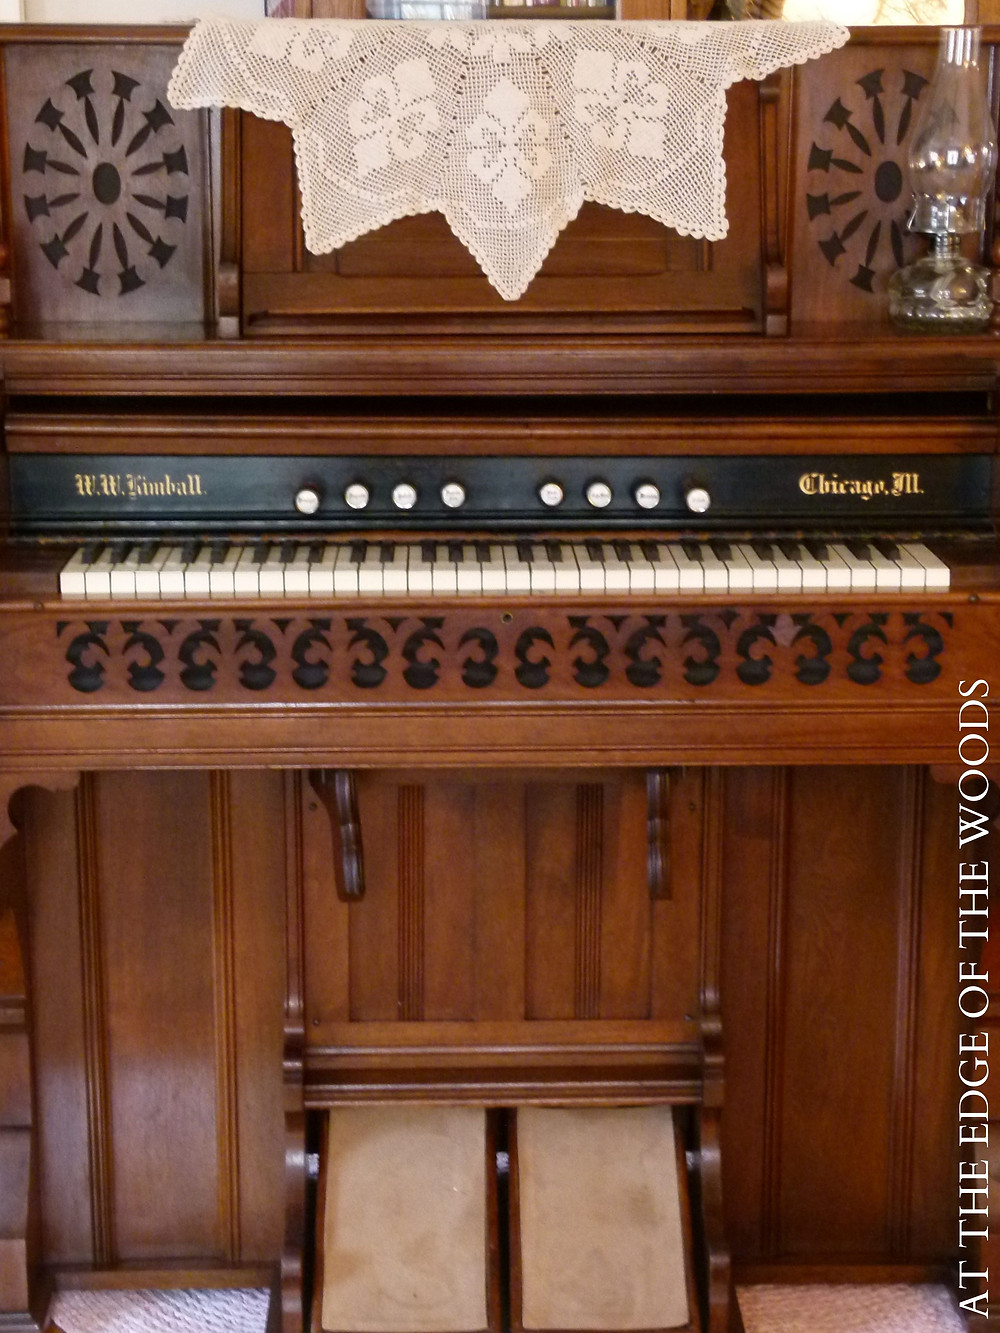 the cleaned and finished pump organ